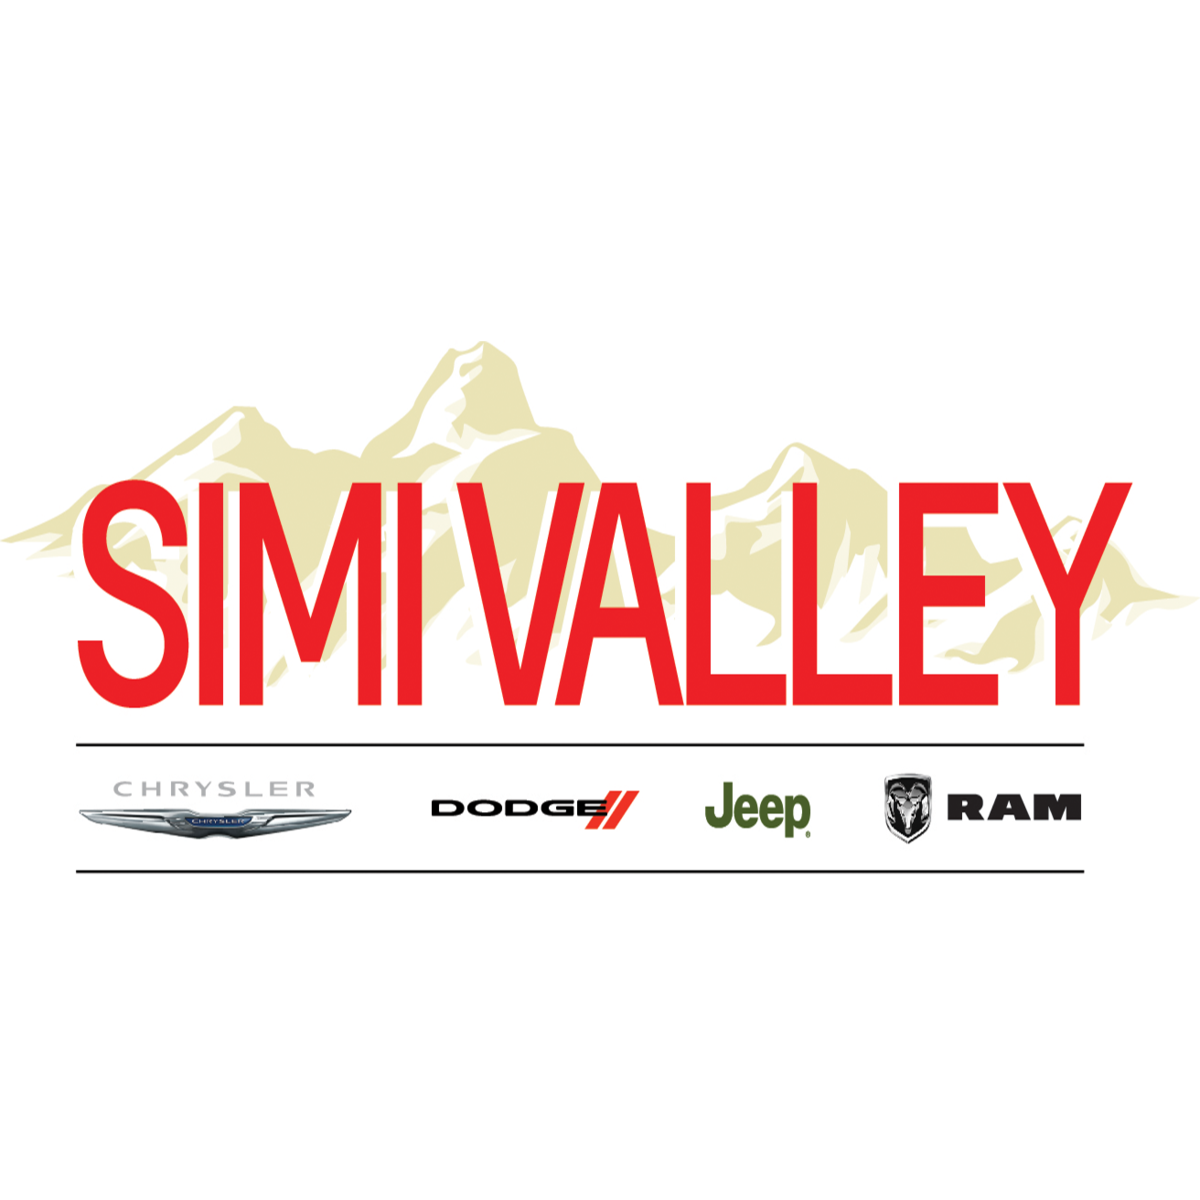 Simi Valley Chrysler Jeep Dodge Ram - Simi Valley, CA: Read Consumer